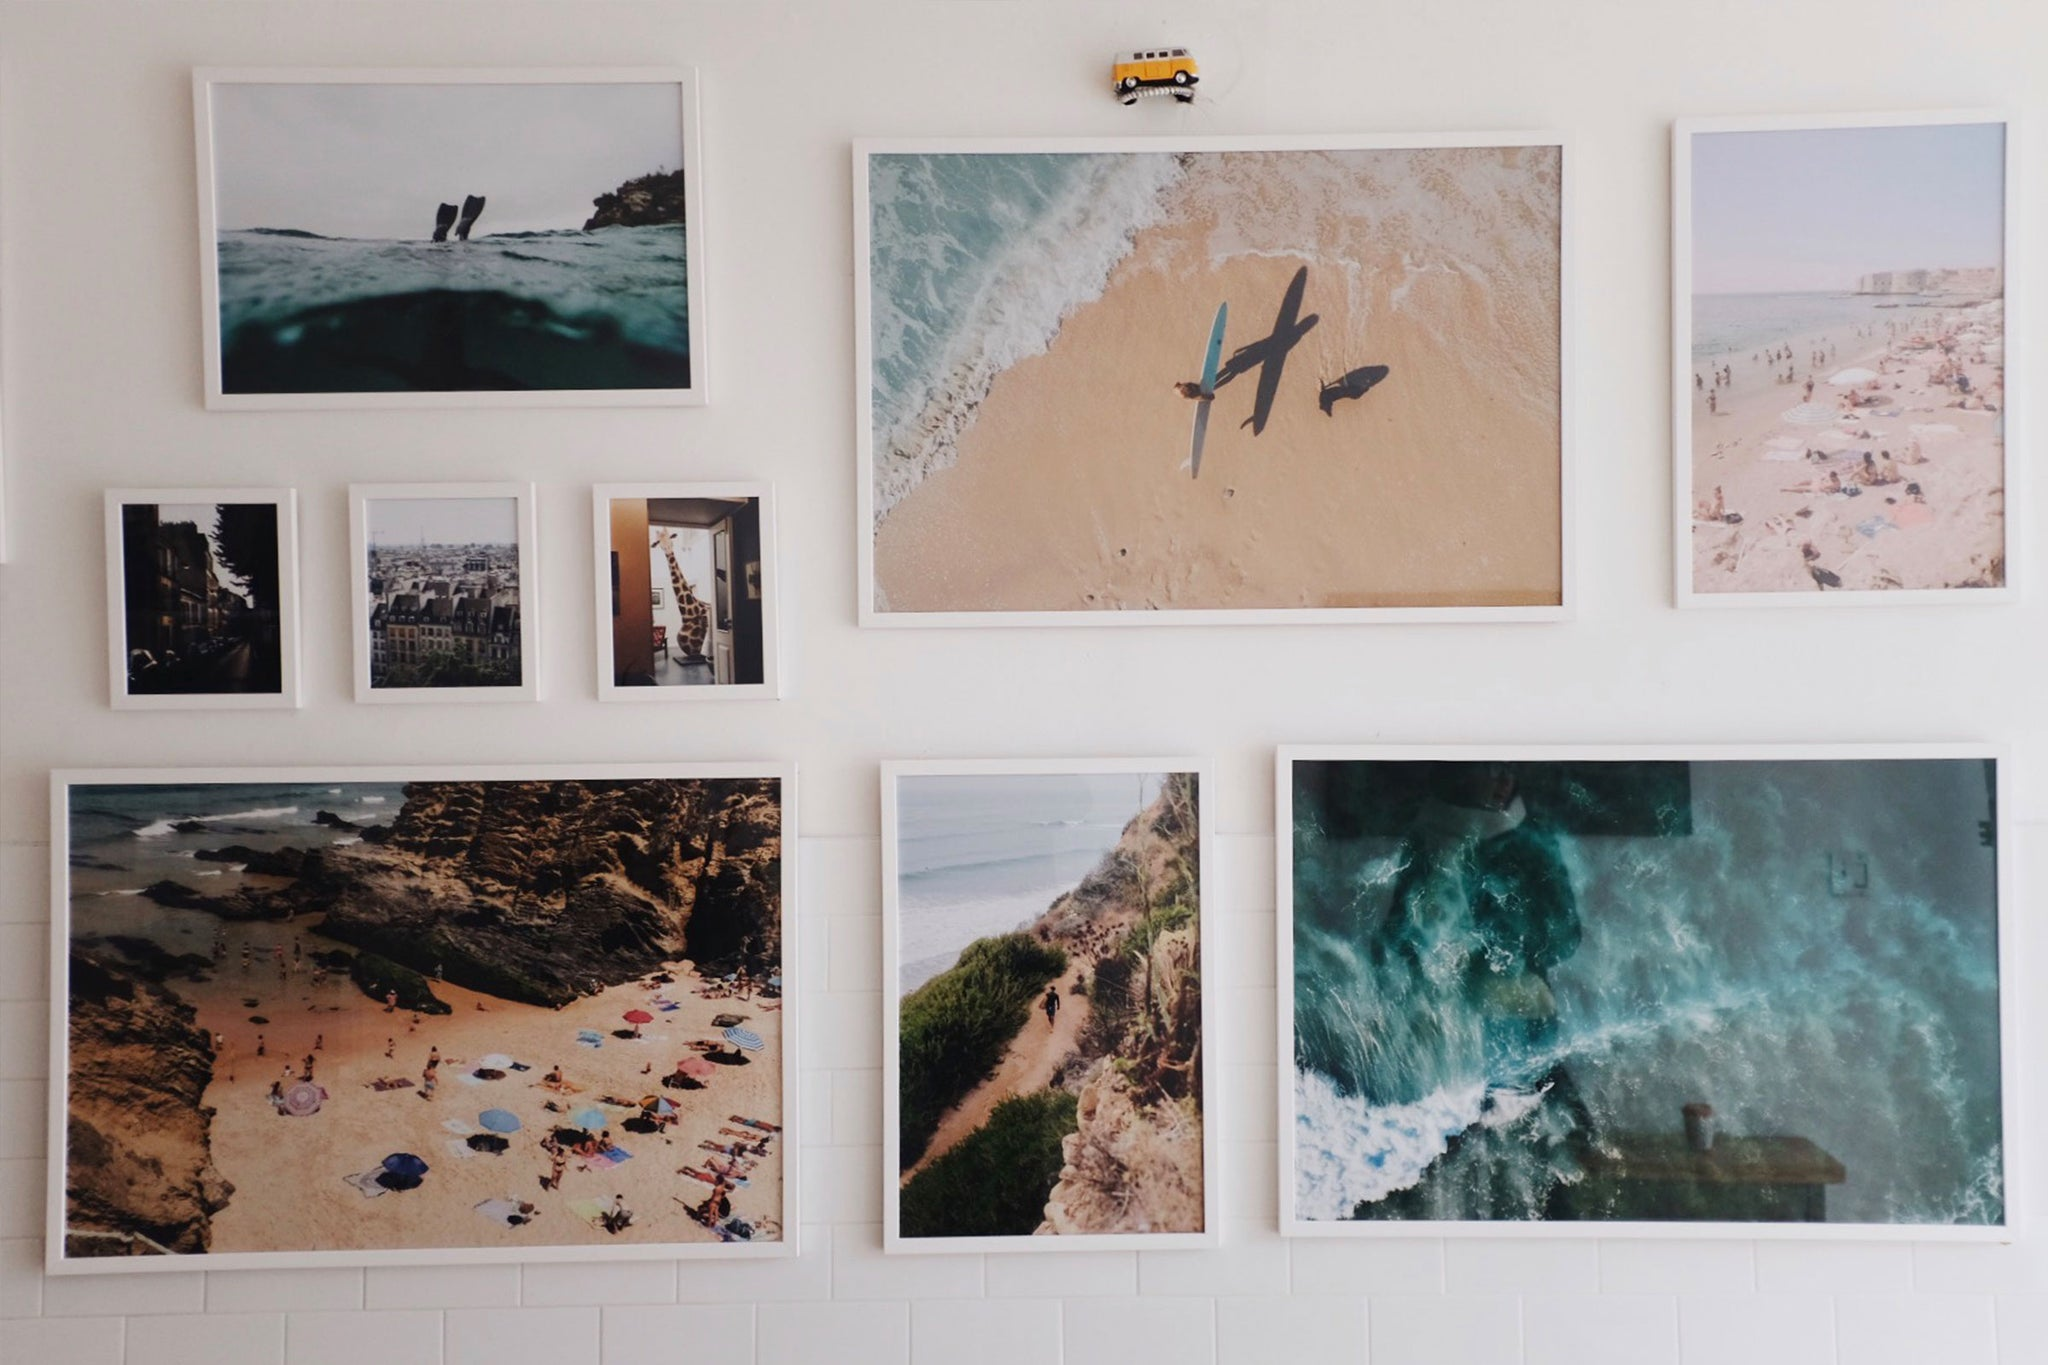 Photo prints featuring work by Excellent Adventures contributors